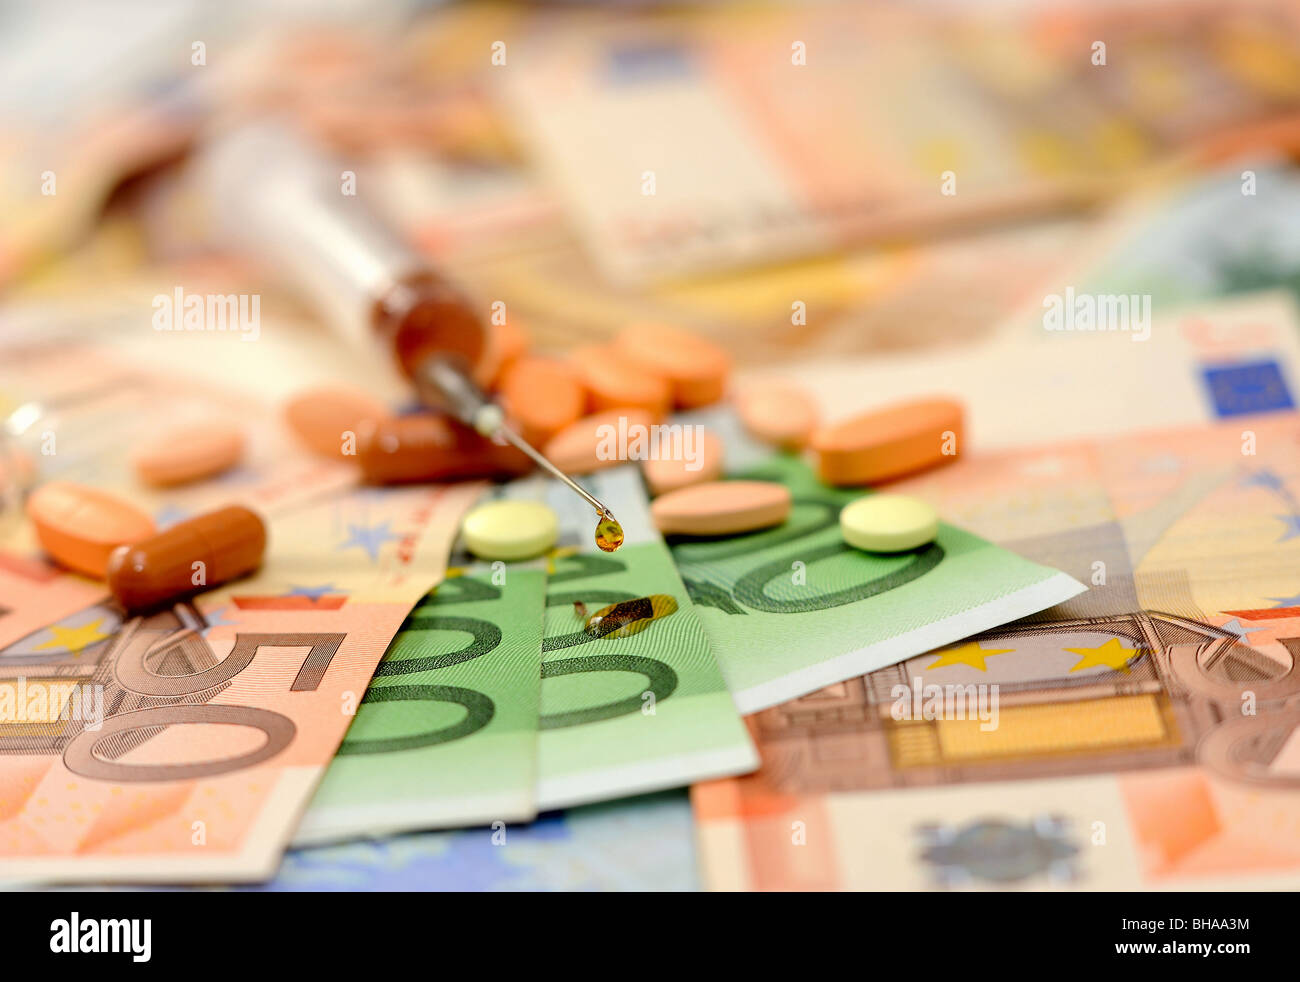 Medicines, a syringe and tablets against paper money - Stock Image